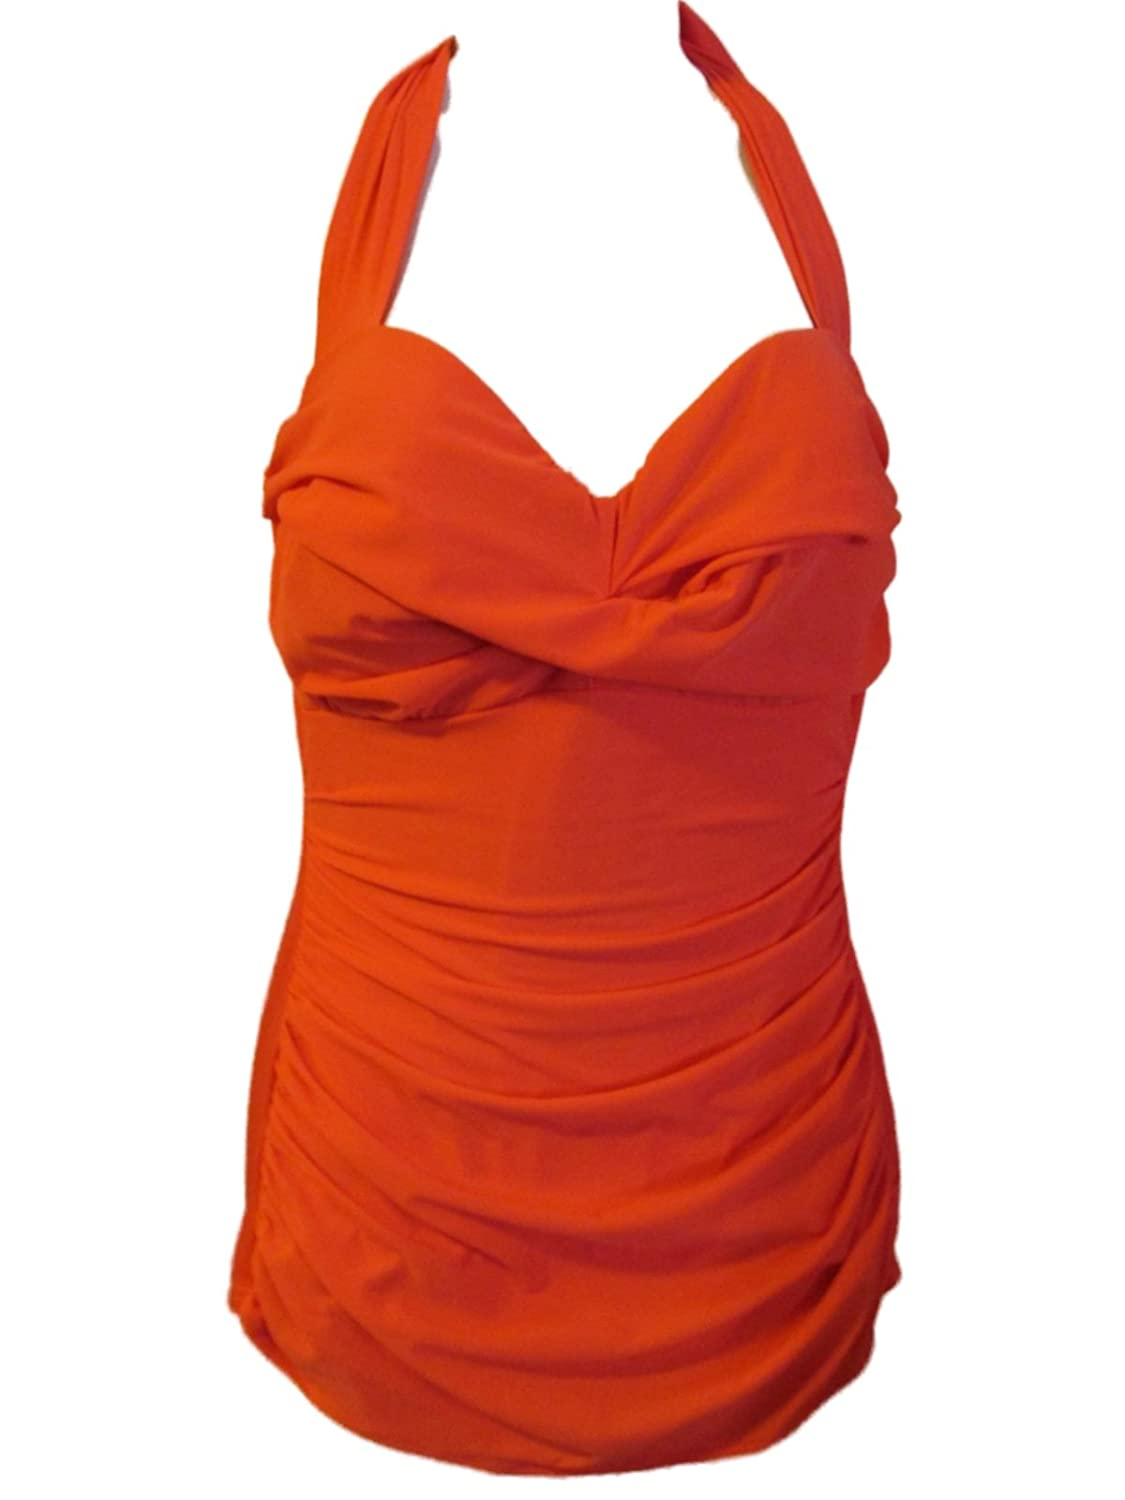 84996fa691a MIRACALESUIT Miraclesuit Women's One Piece Swimsuit Halter Trimshaper at Amazon  Women's Clothing store: